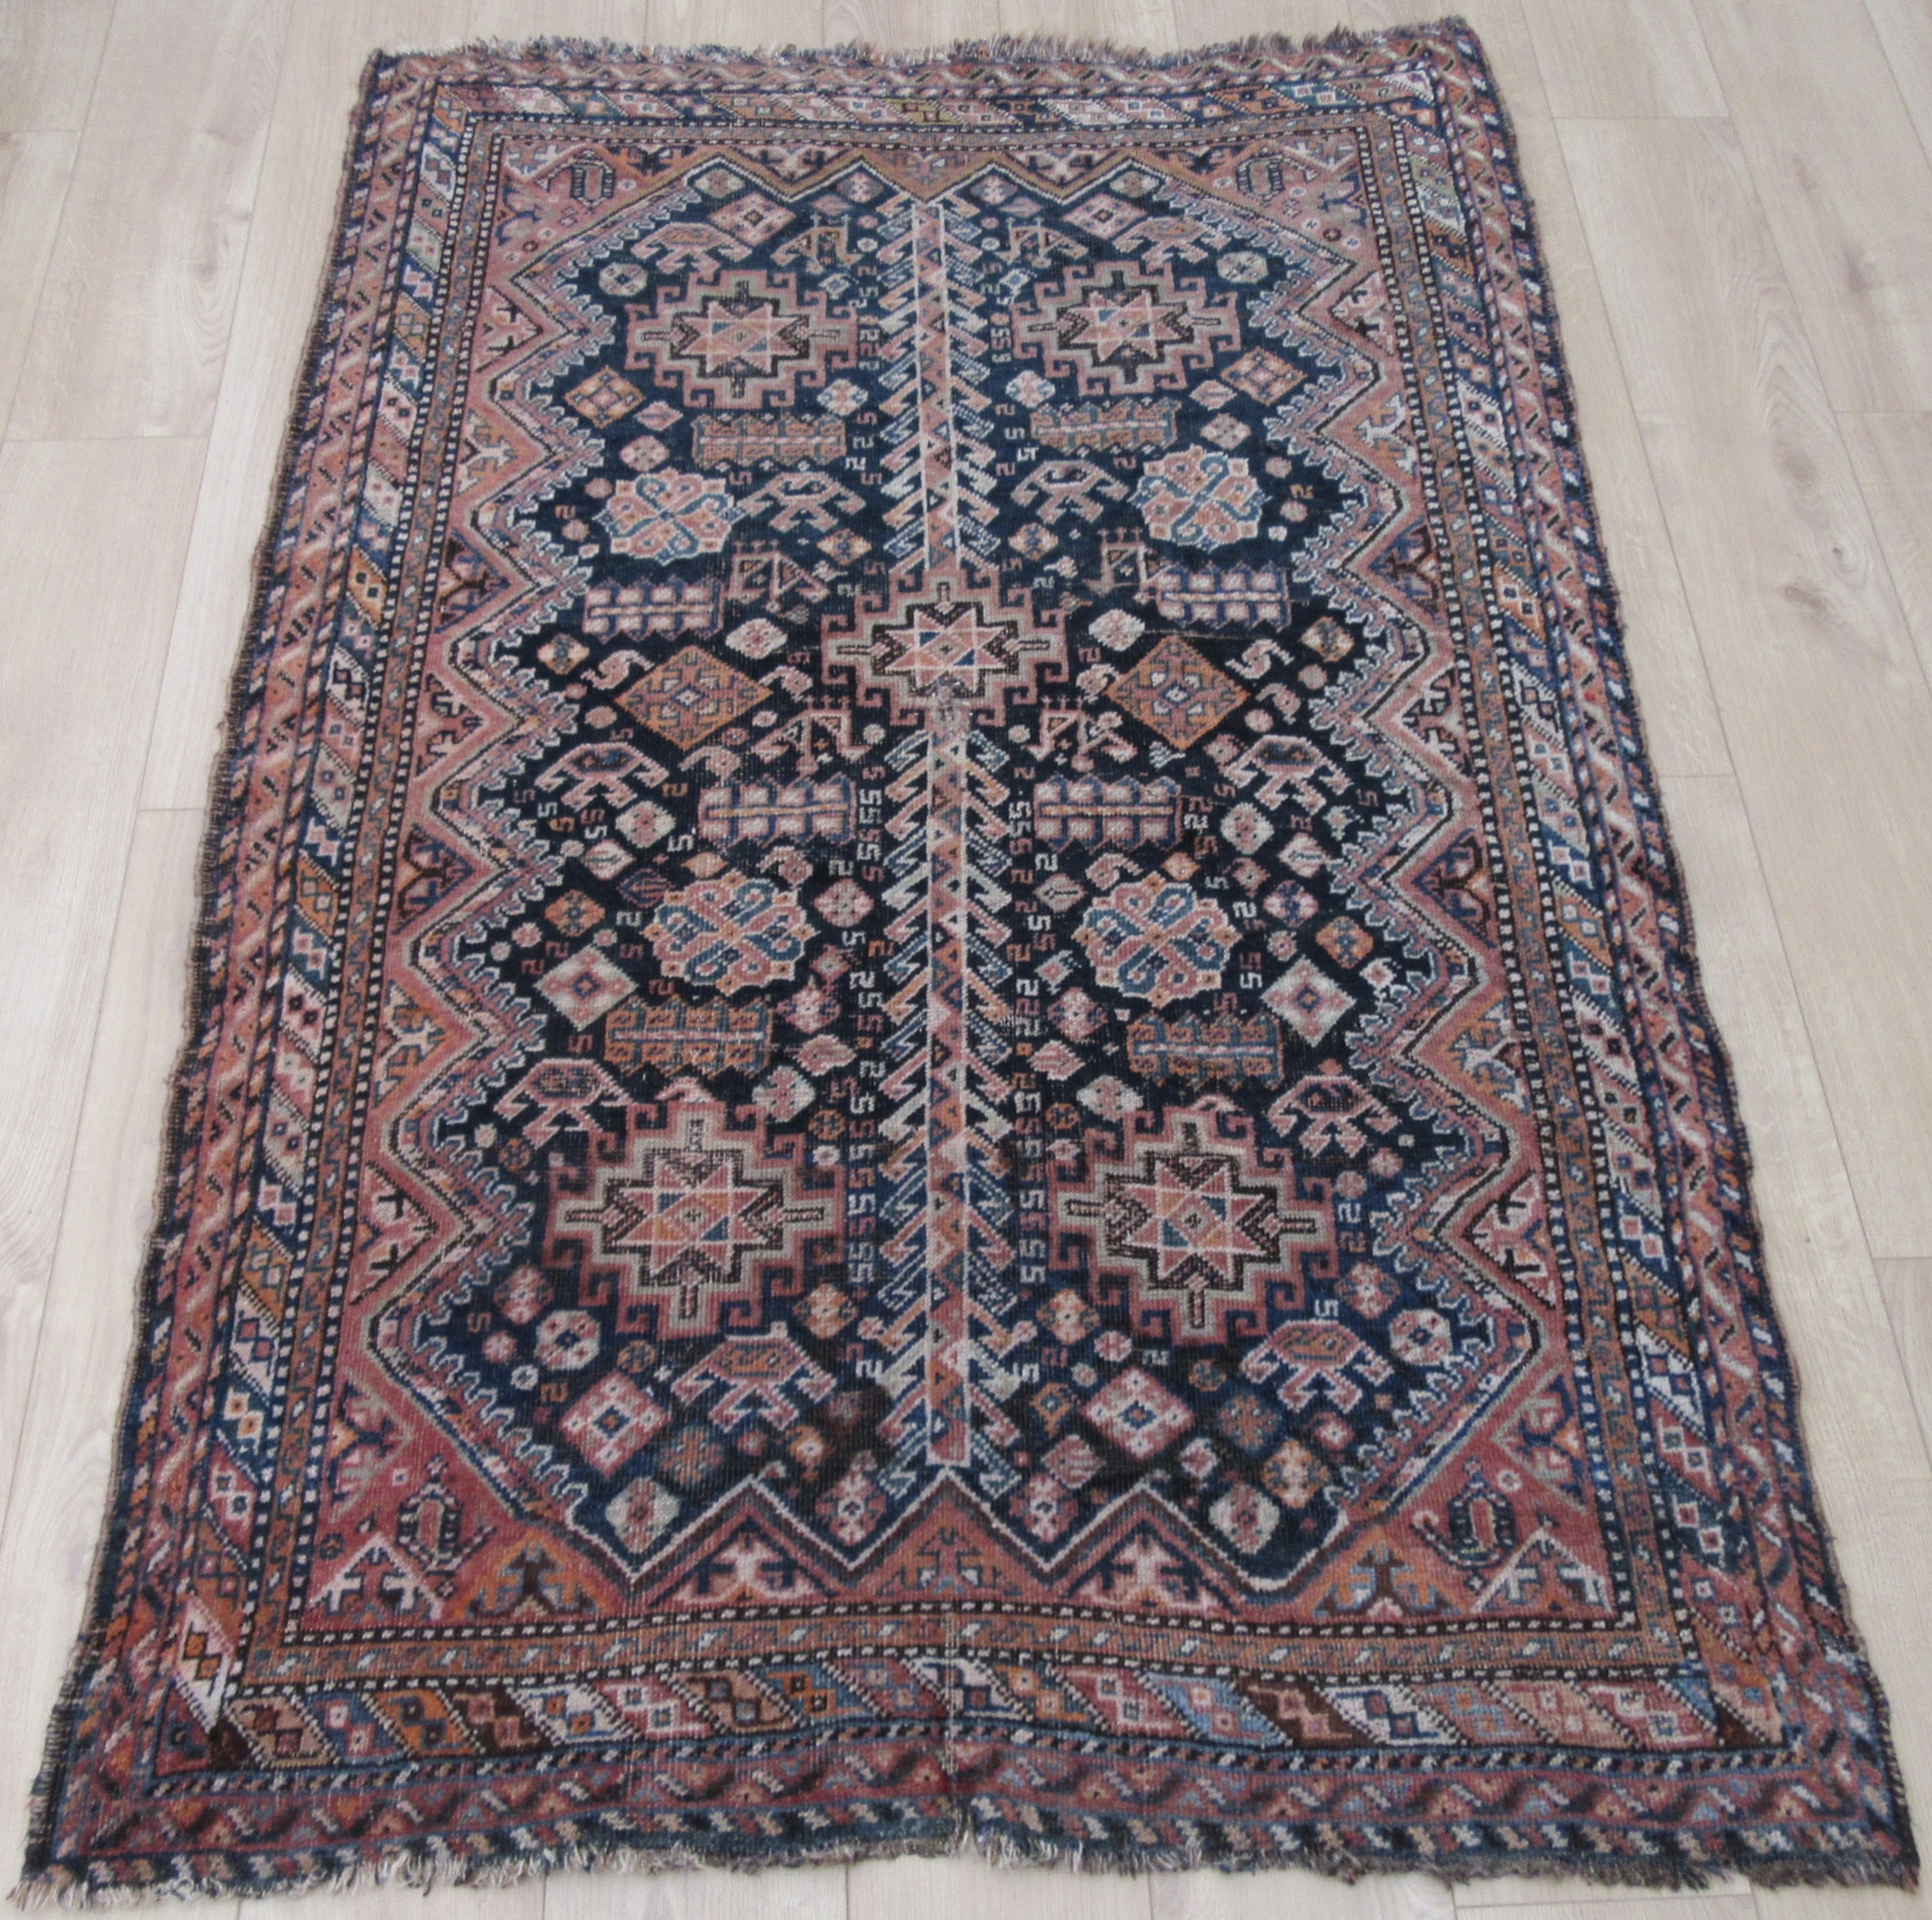 antique country house shabby chic south west persian fars tribal rug comical bird motifs